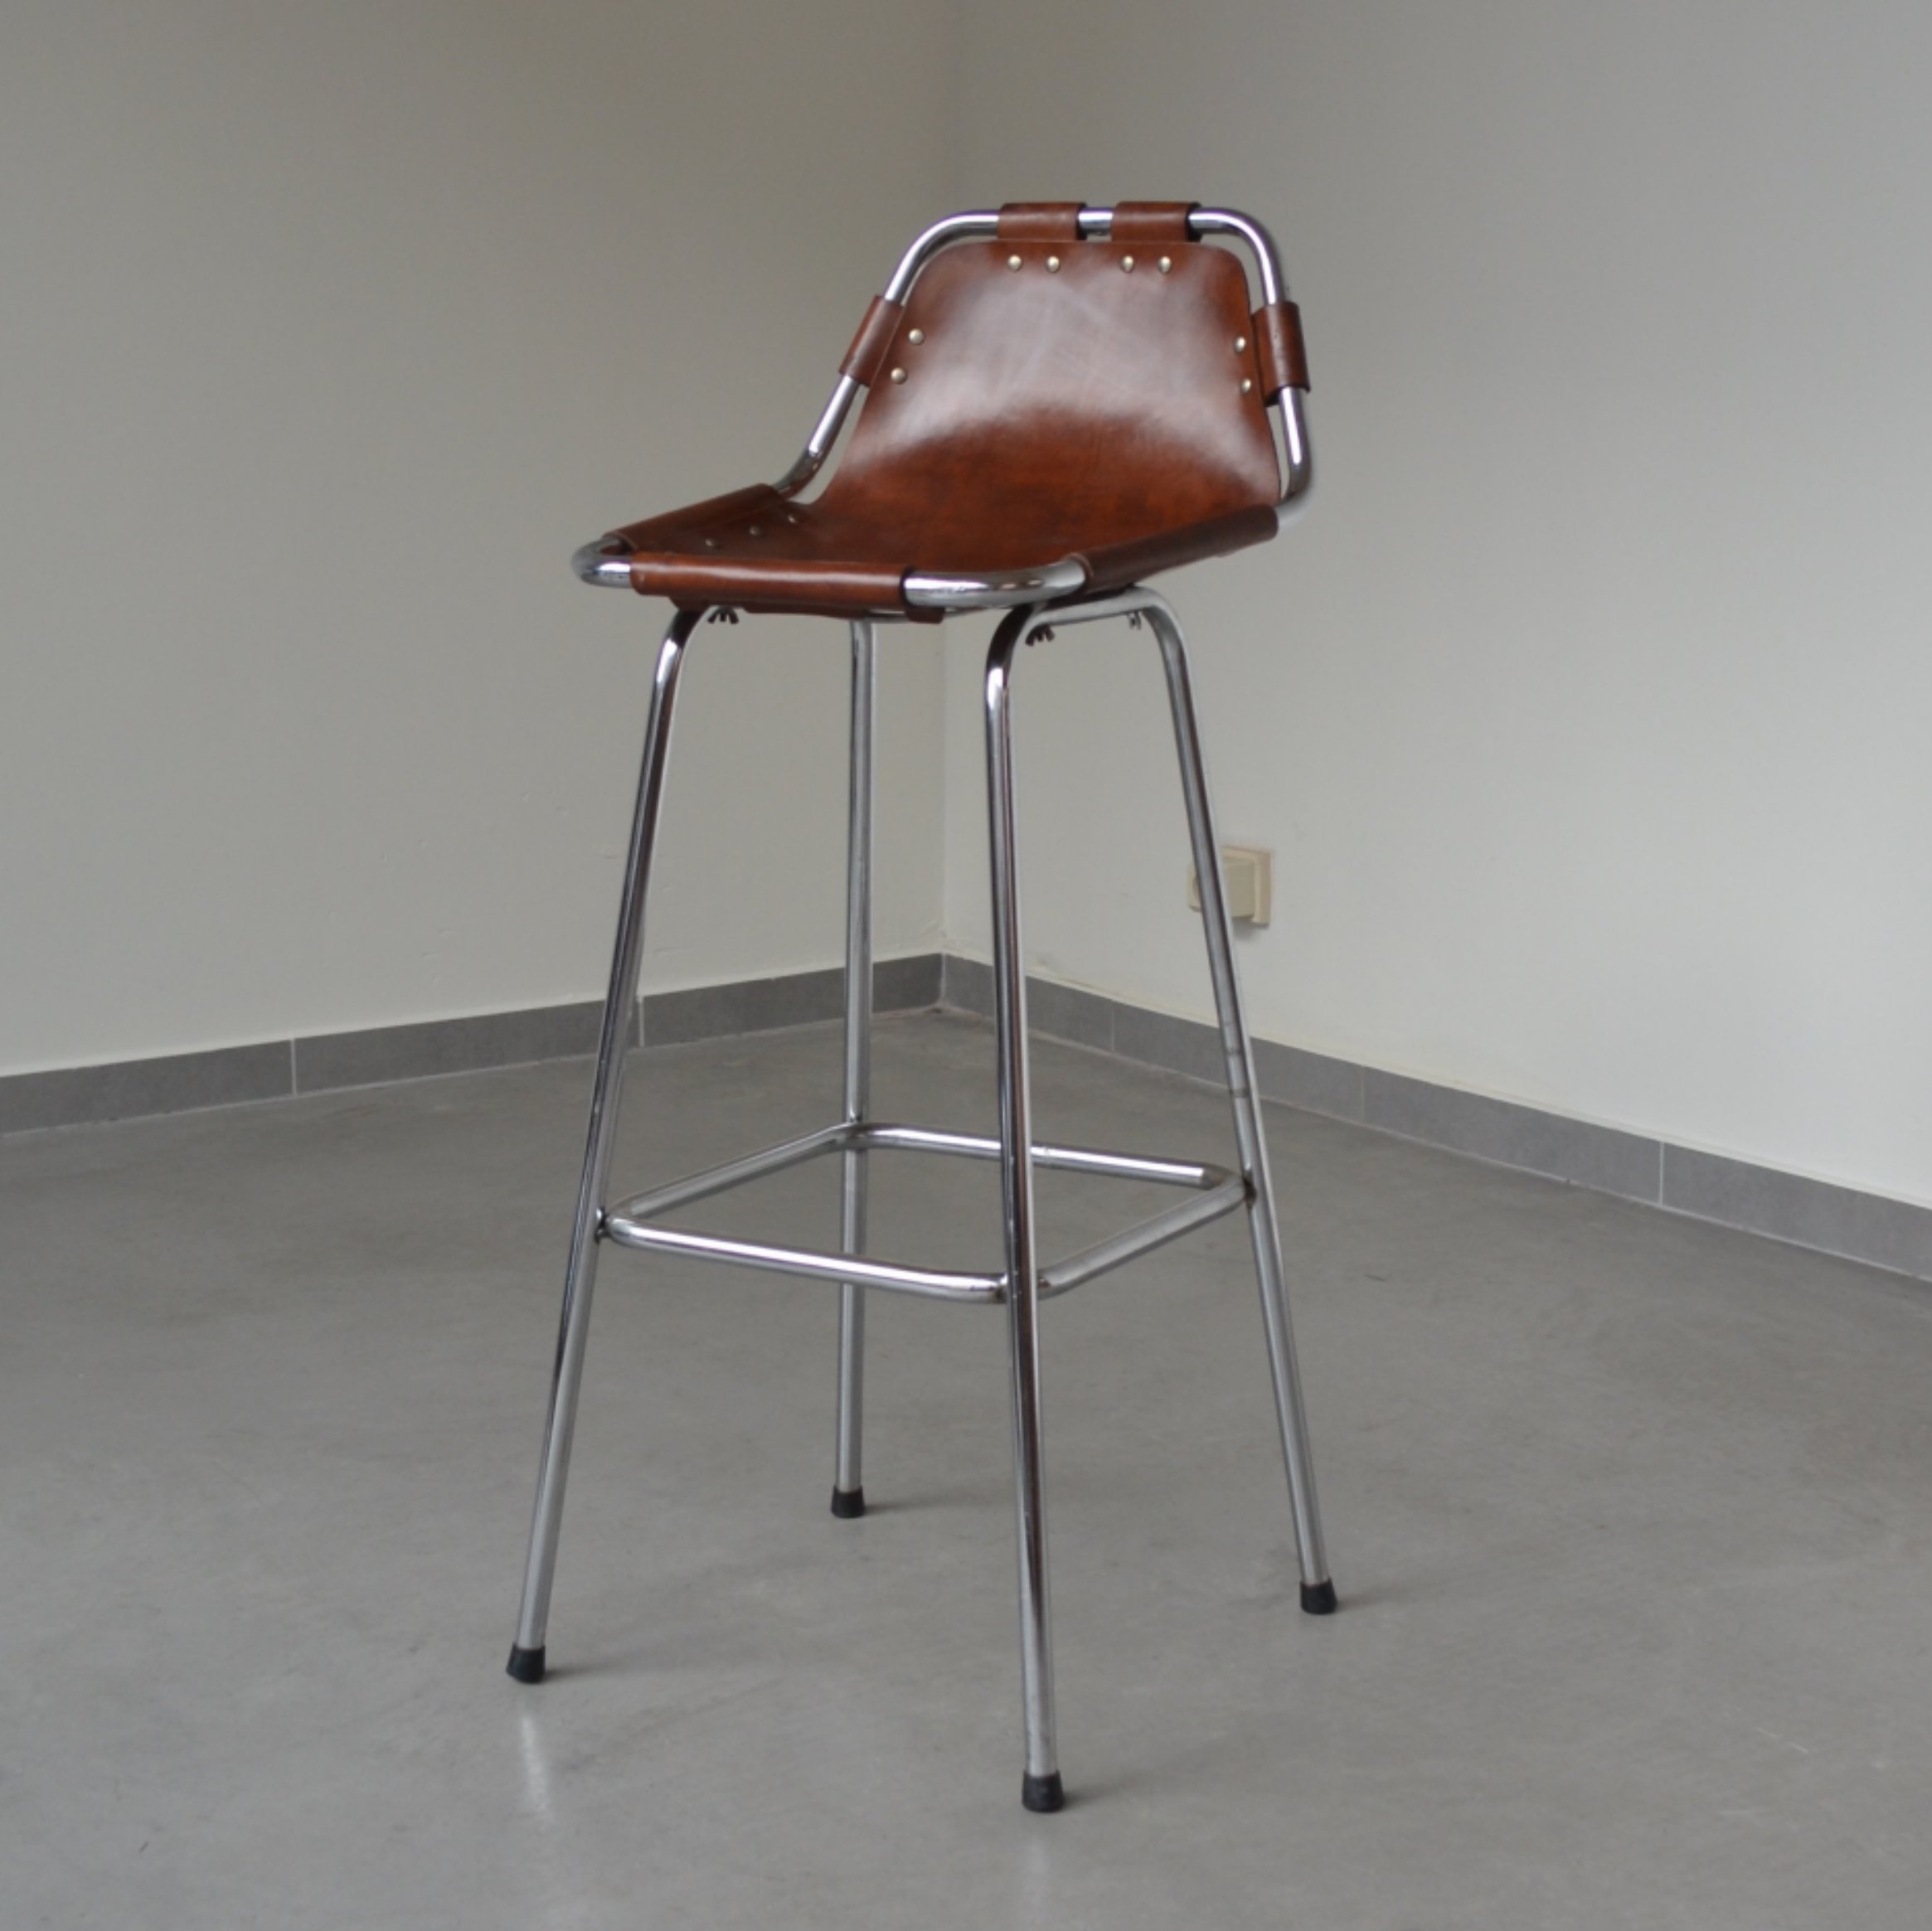 Pair Of Les Arcs Bar Stools By Charlotte Perriand 1960s